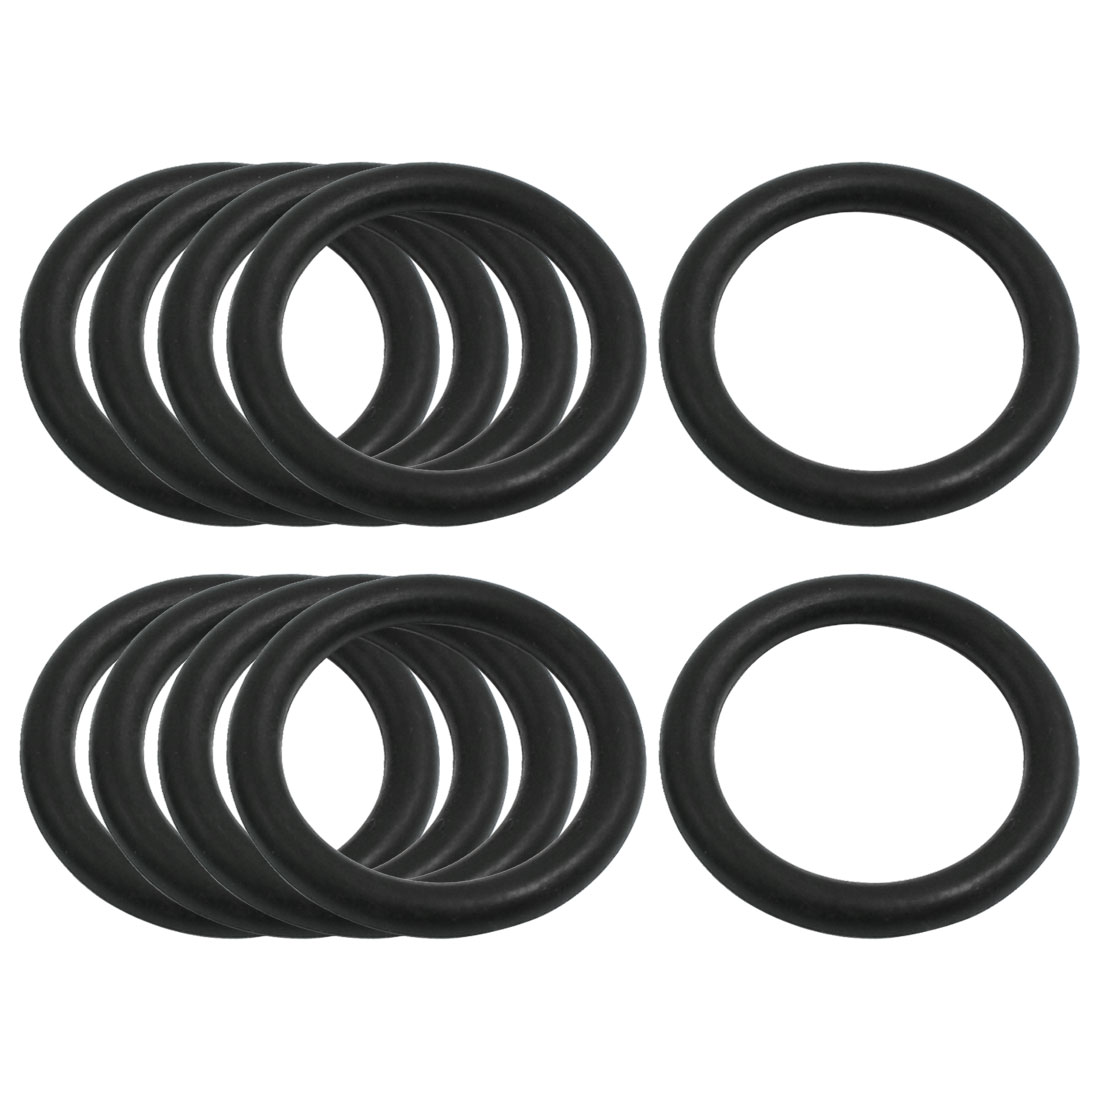 5mm x 38mm Nitrile Rubber O Type Sealing Ring Gasket Grommets Black 10Pcs